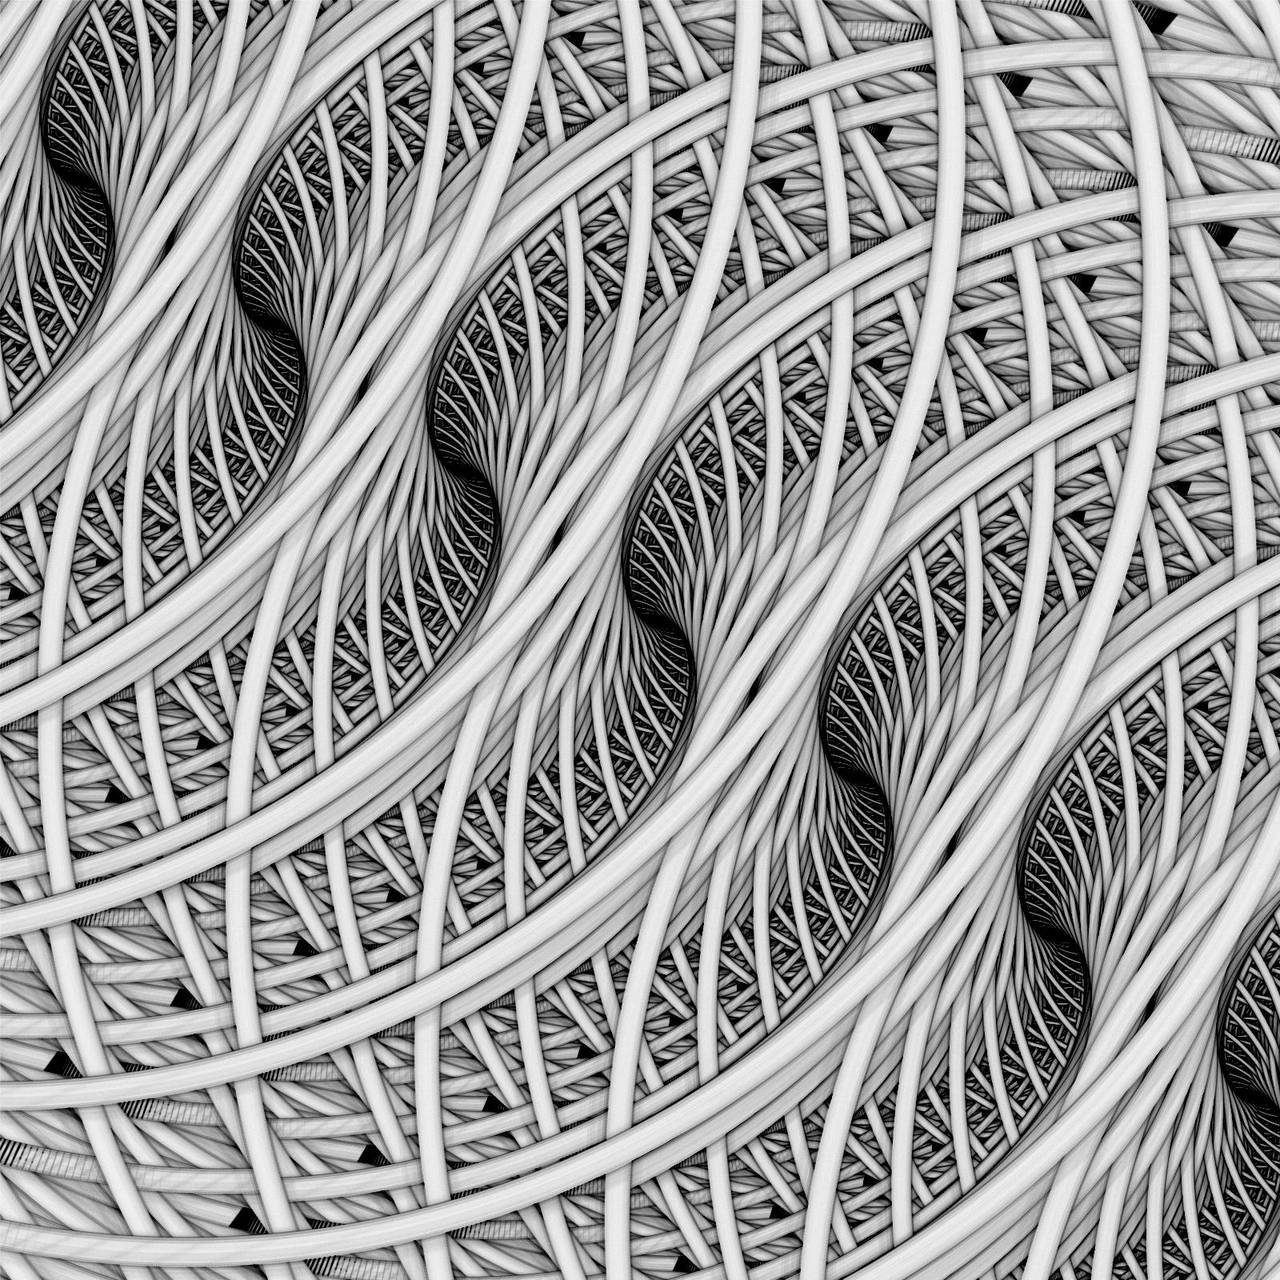 Complexity 2010 1 by piritipany